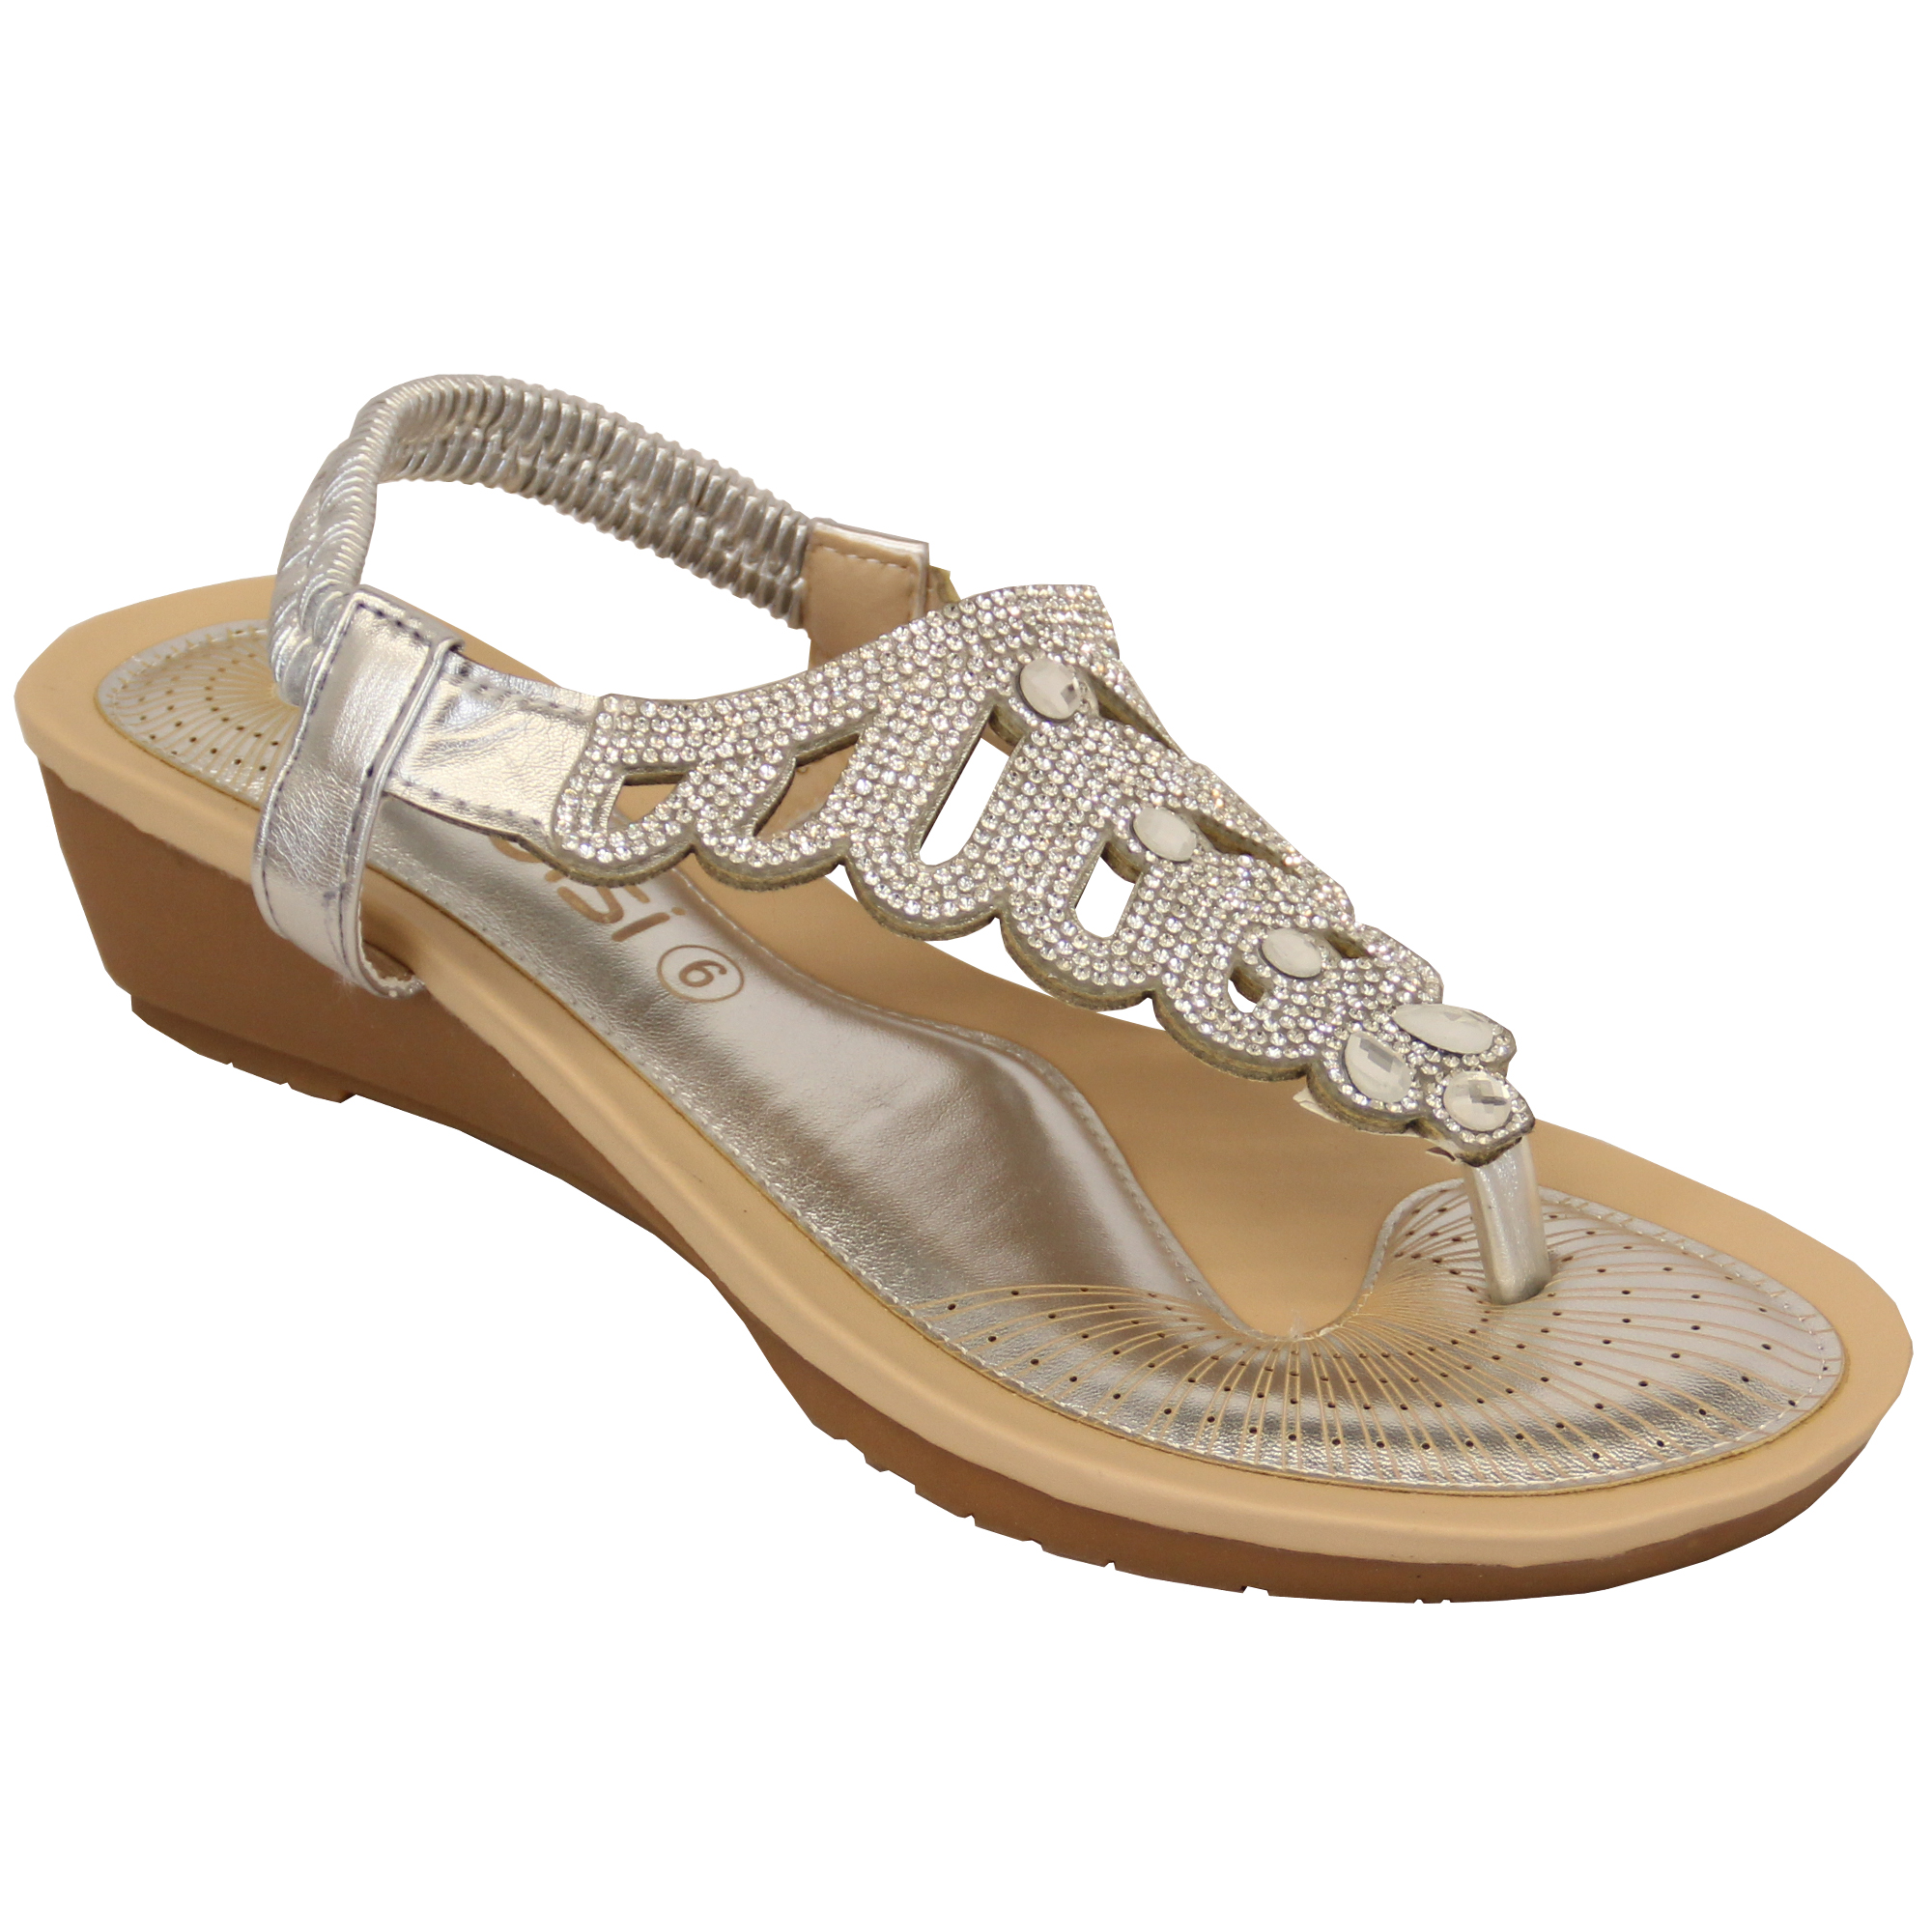 Womens Slip On Casual Shoes Uk